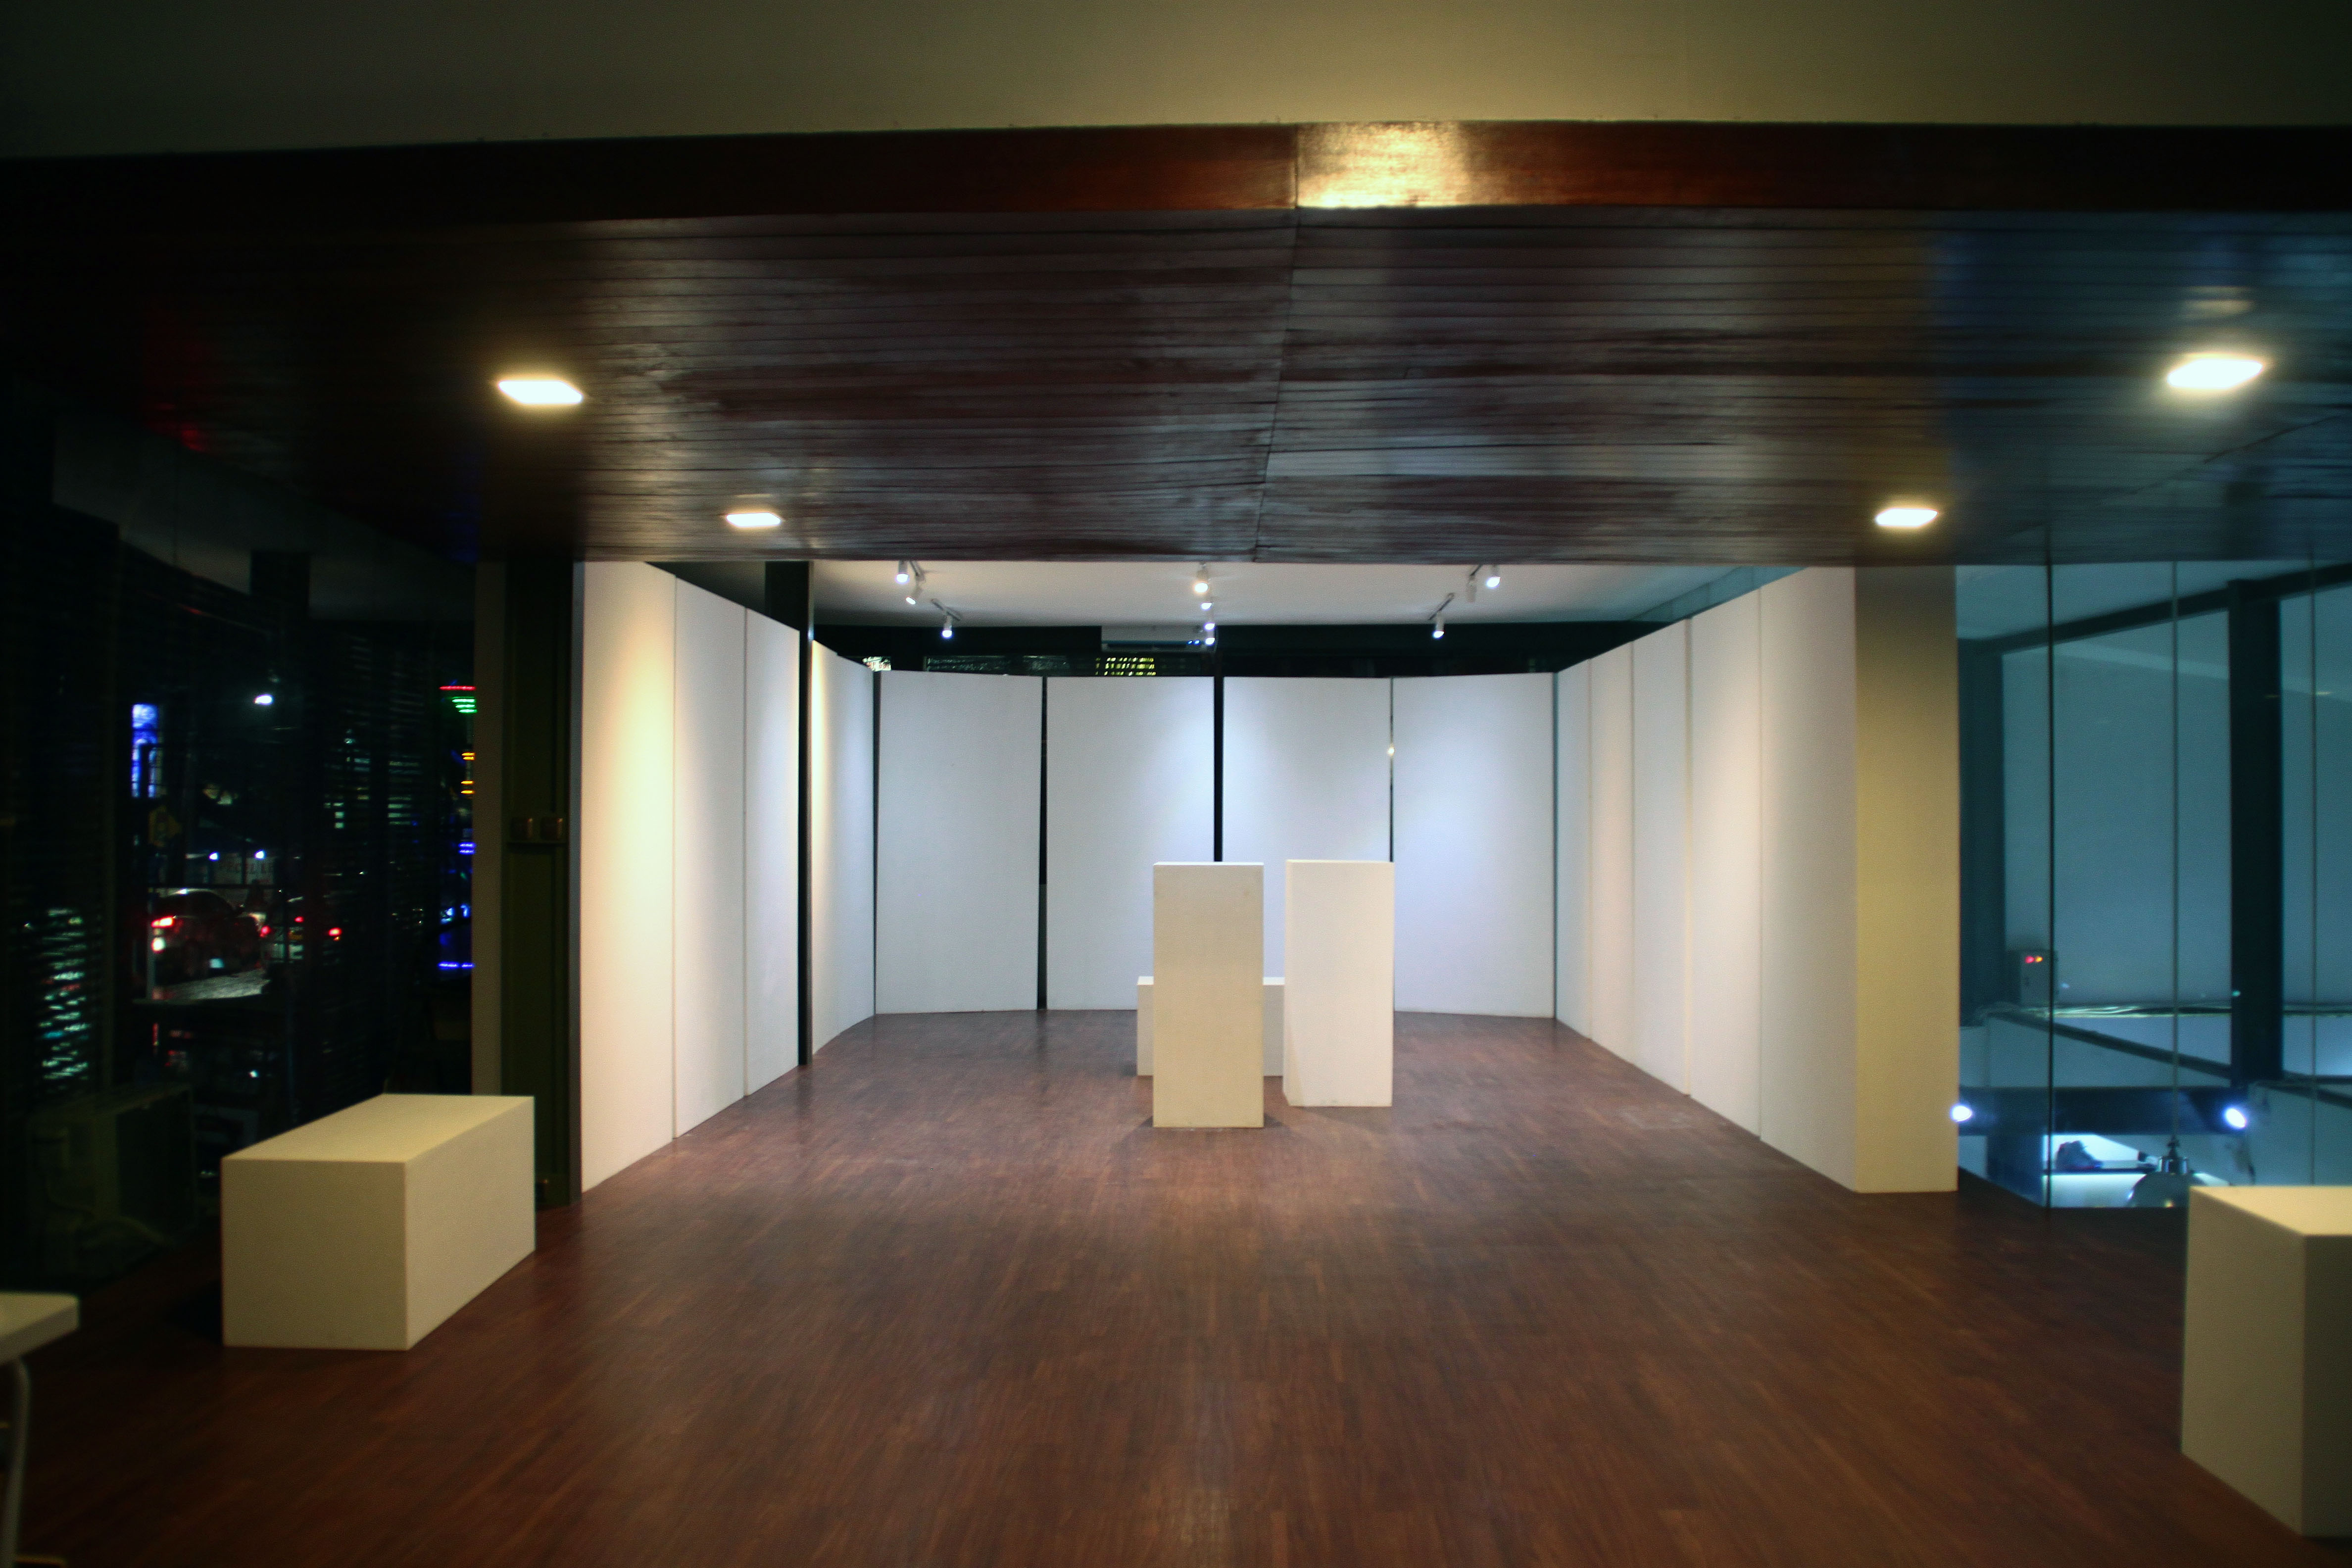 Ganara Art Gallery Space